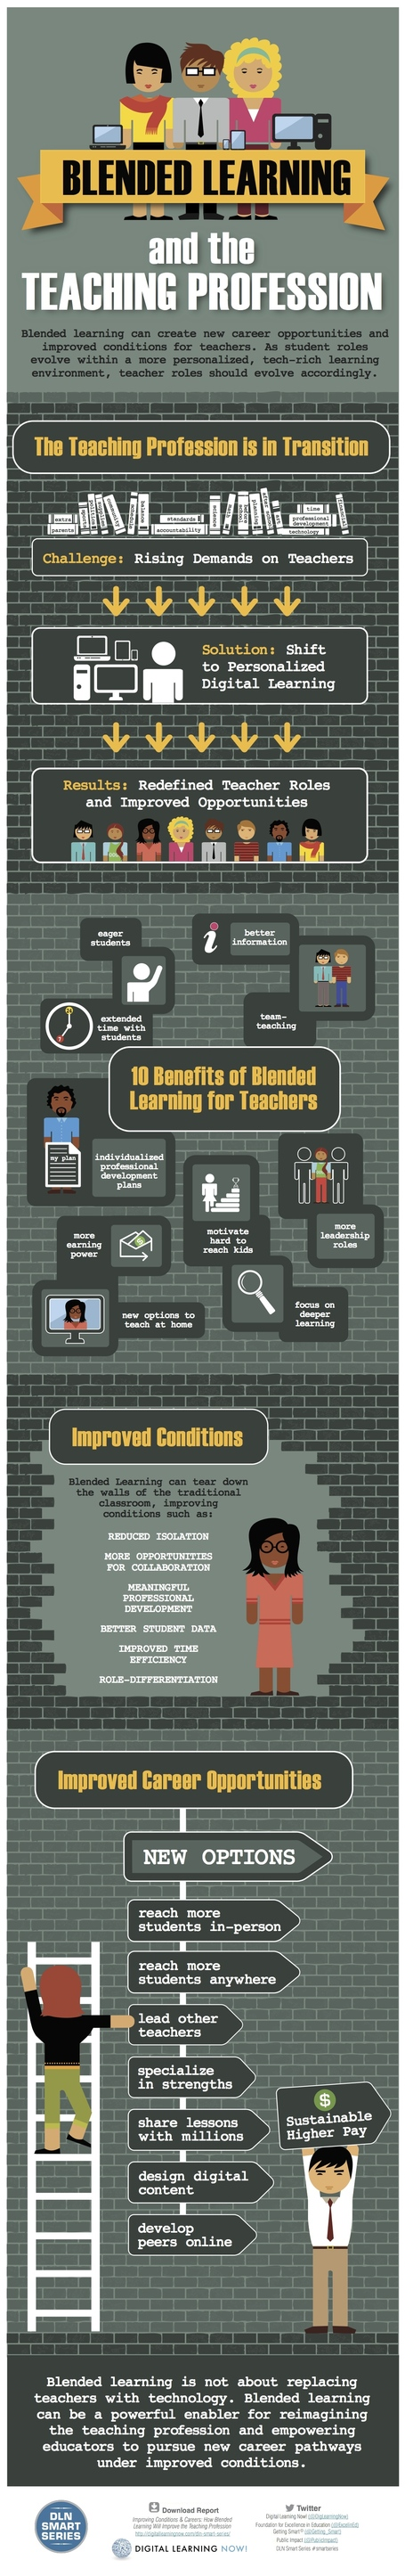 Blended Learning Teaching Infographic | English 2.0 | Scoop.it